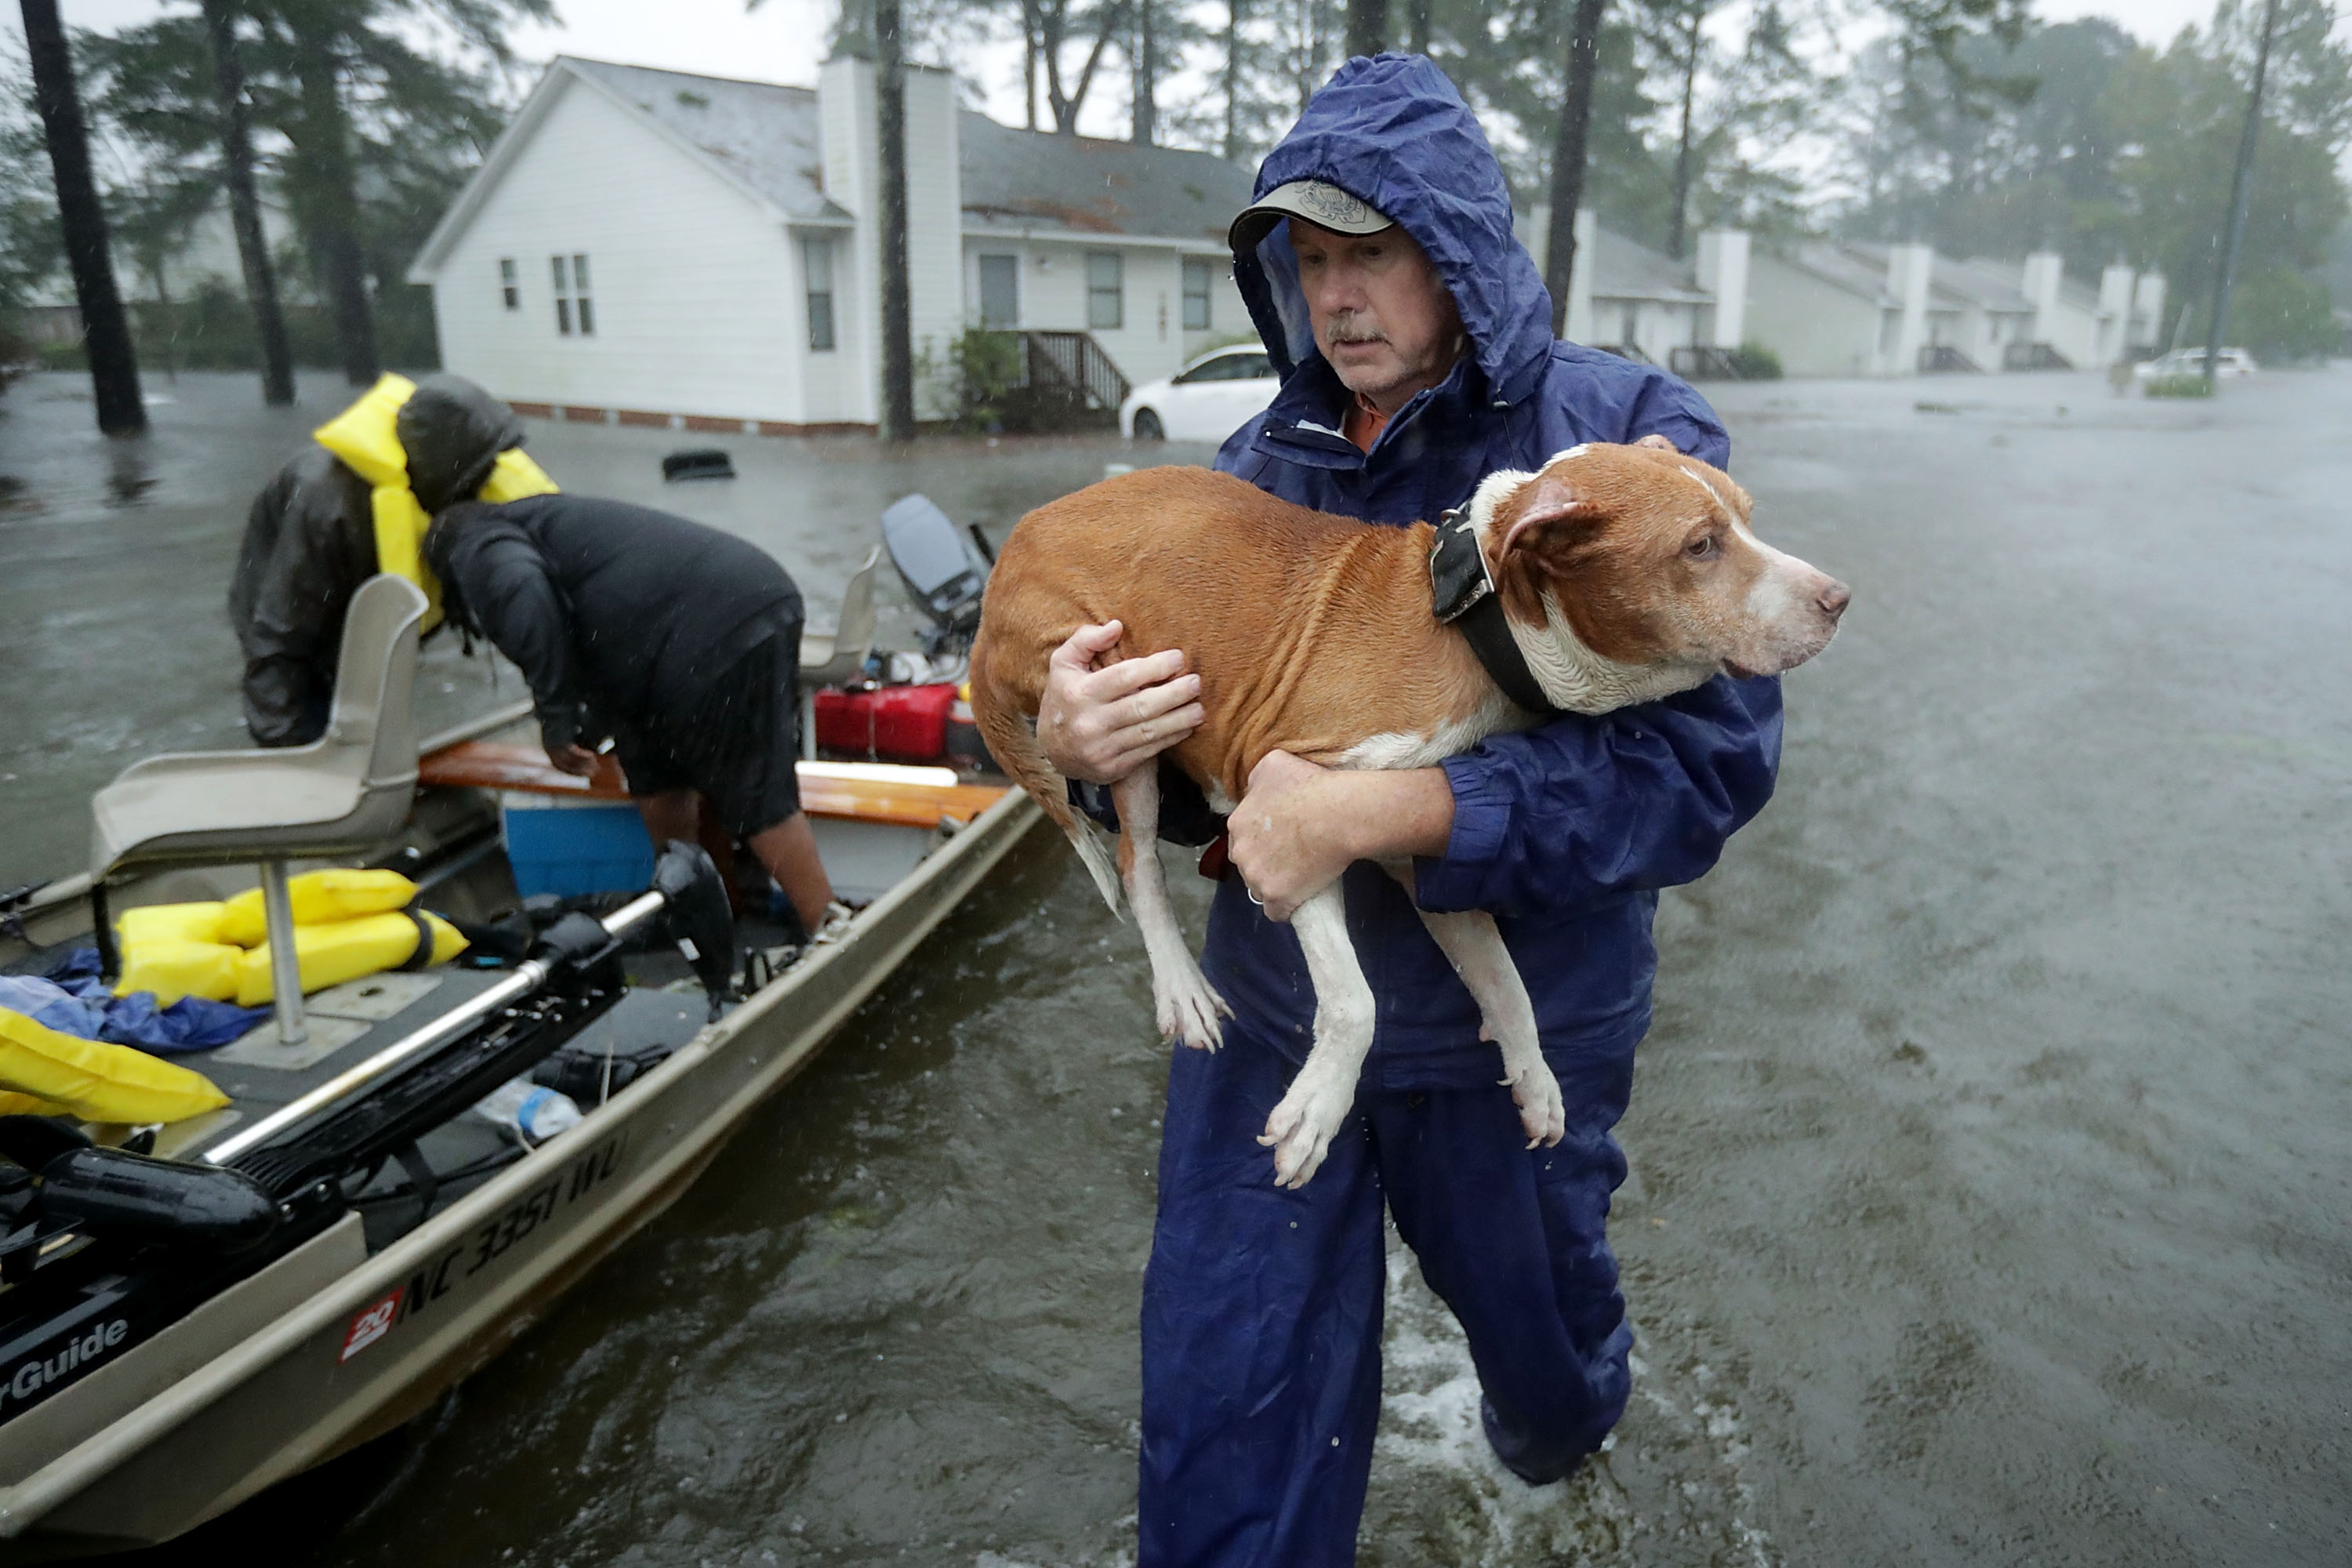 Volunteers from all over North Carolina help rescue residents and their pets from their flooded homes during Hurricane Florence September 14, 2018 in New Bern, North Carolina.